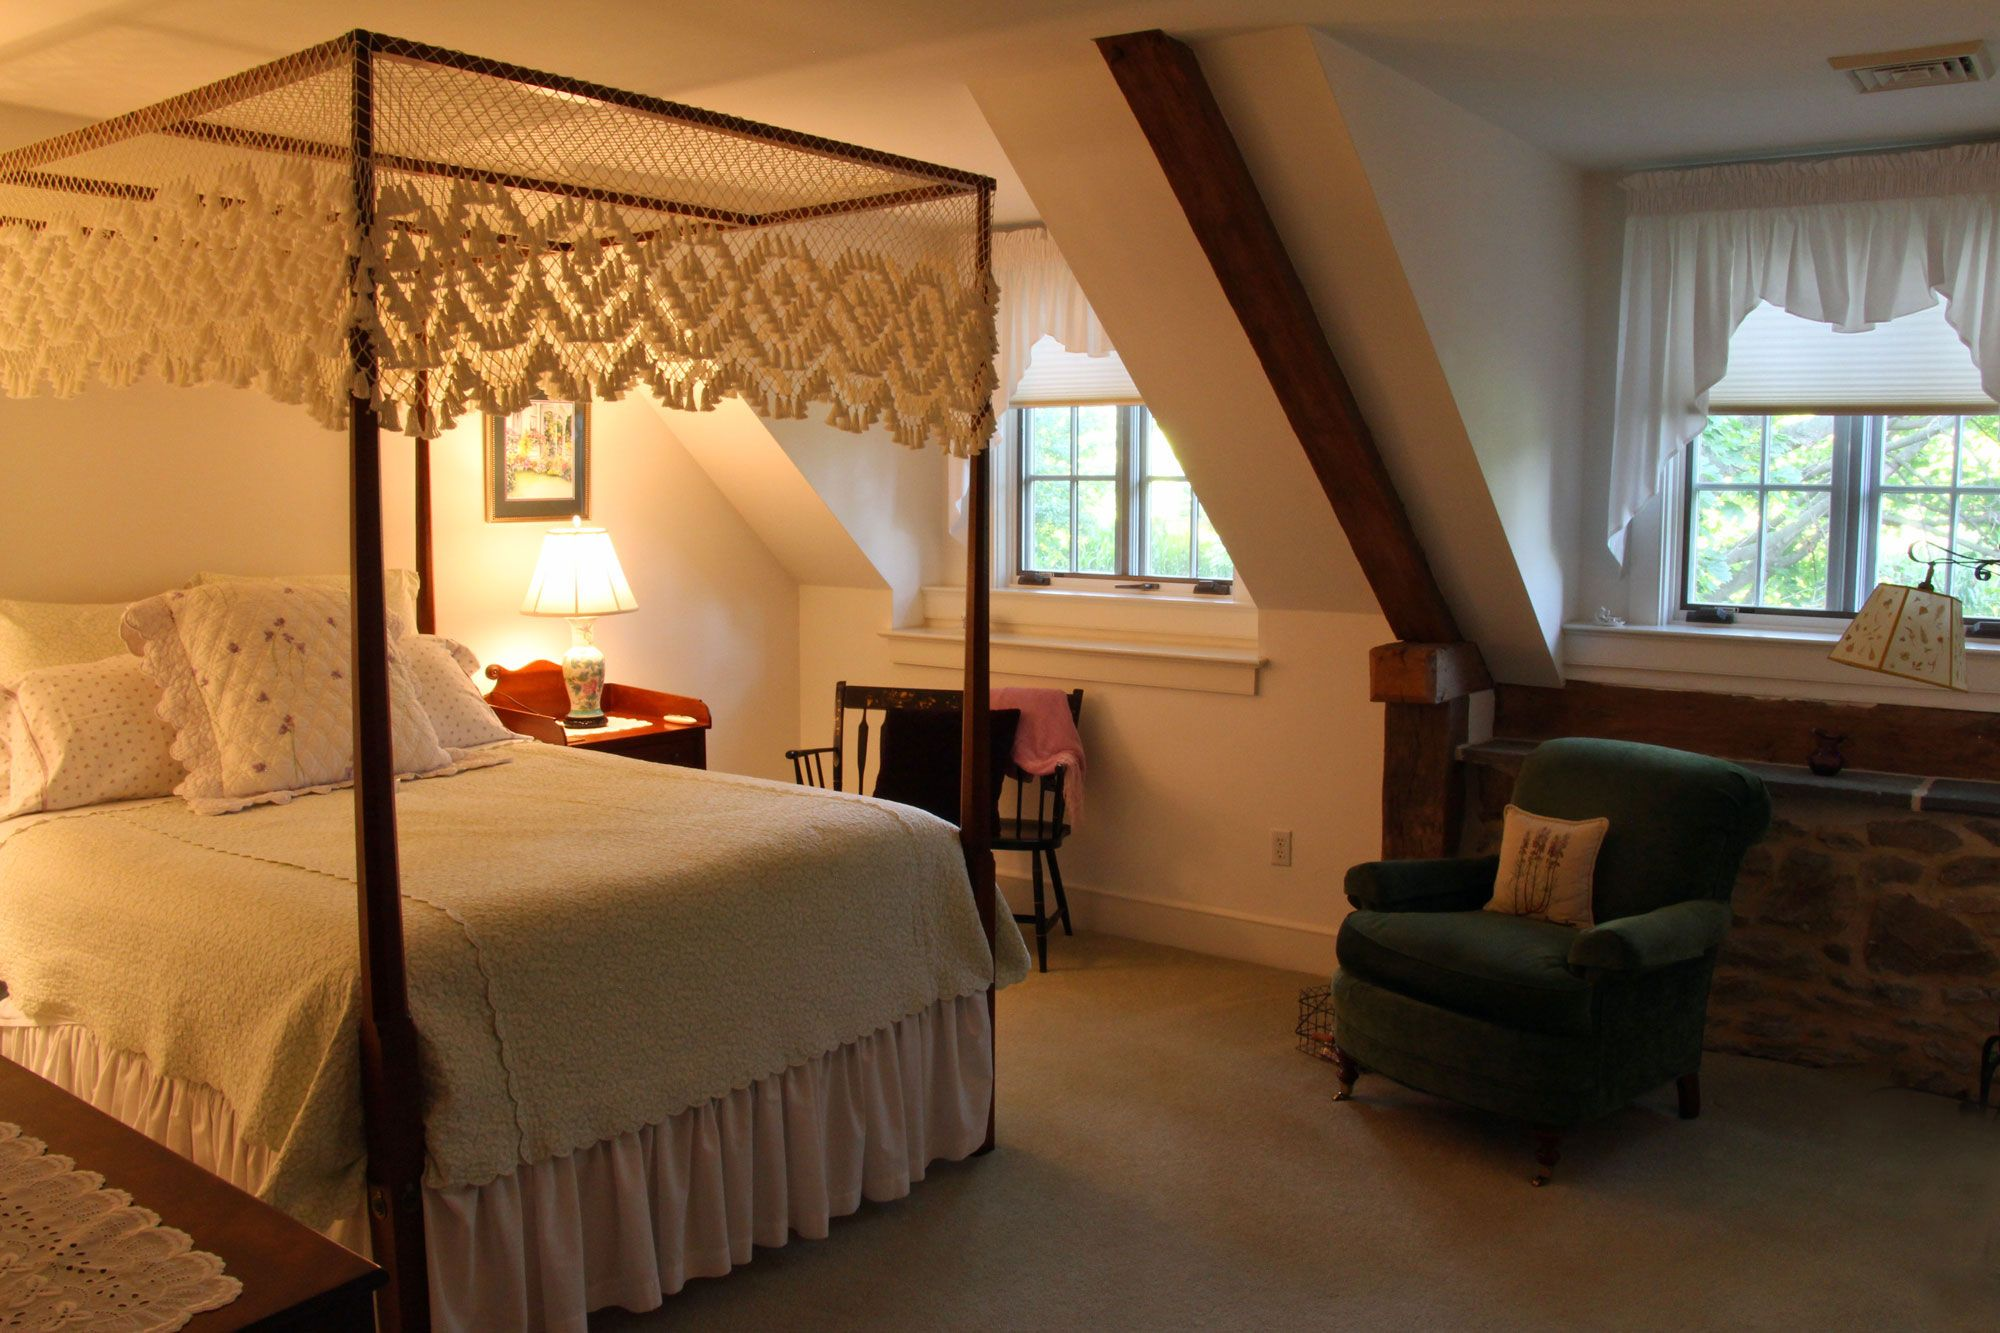 Pheasant Run Farm Bed and Breakfast, Lancaster PA http